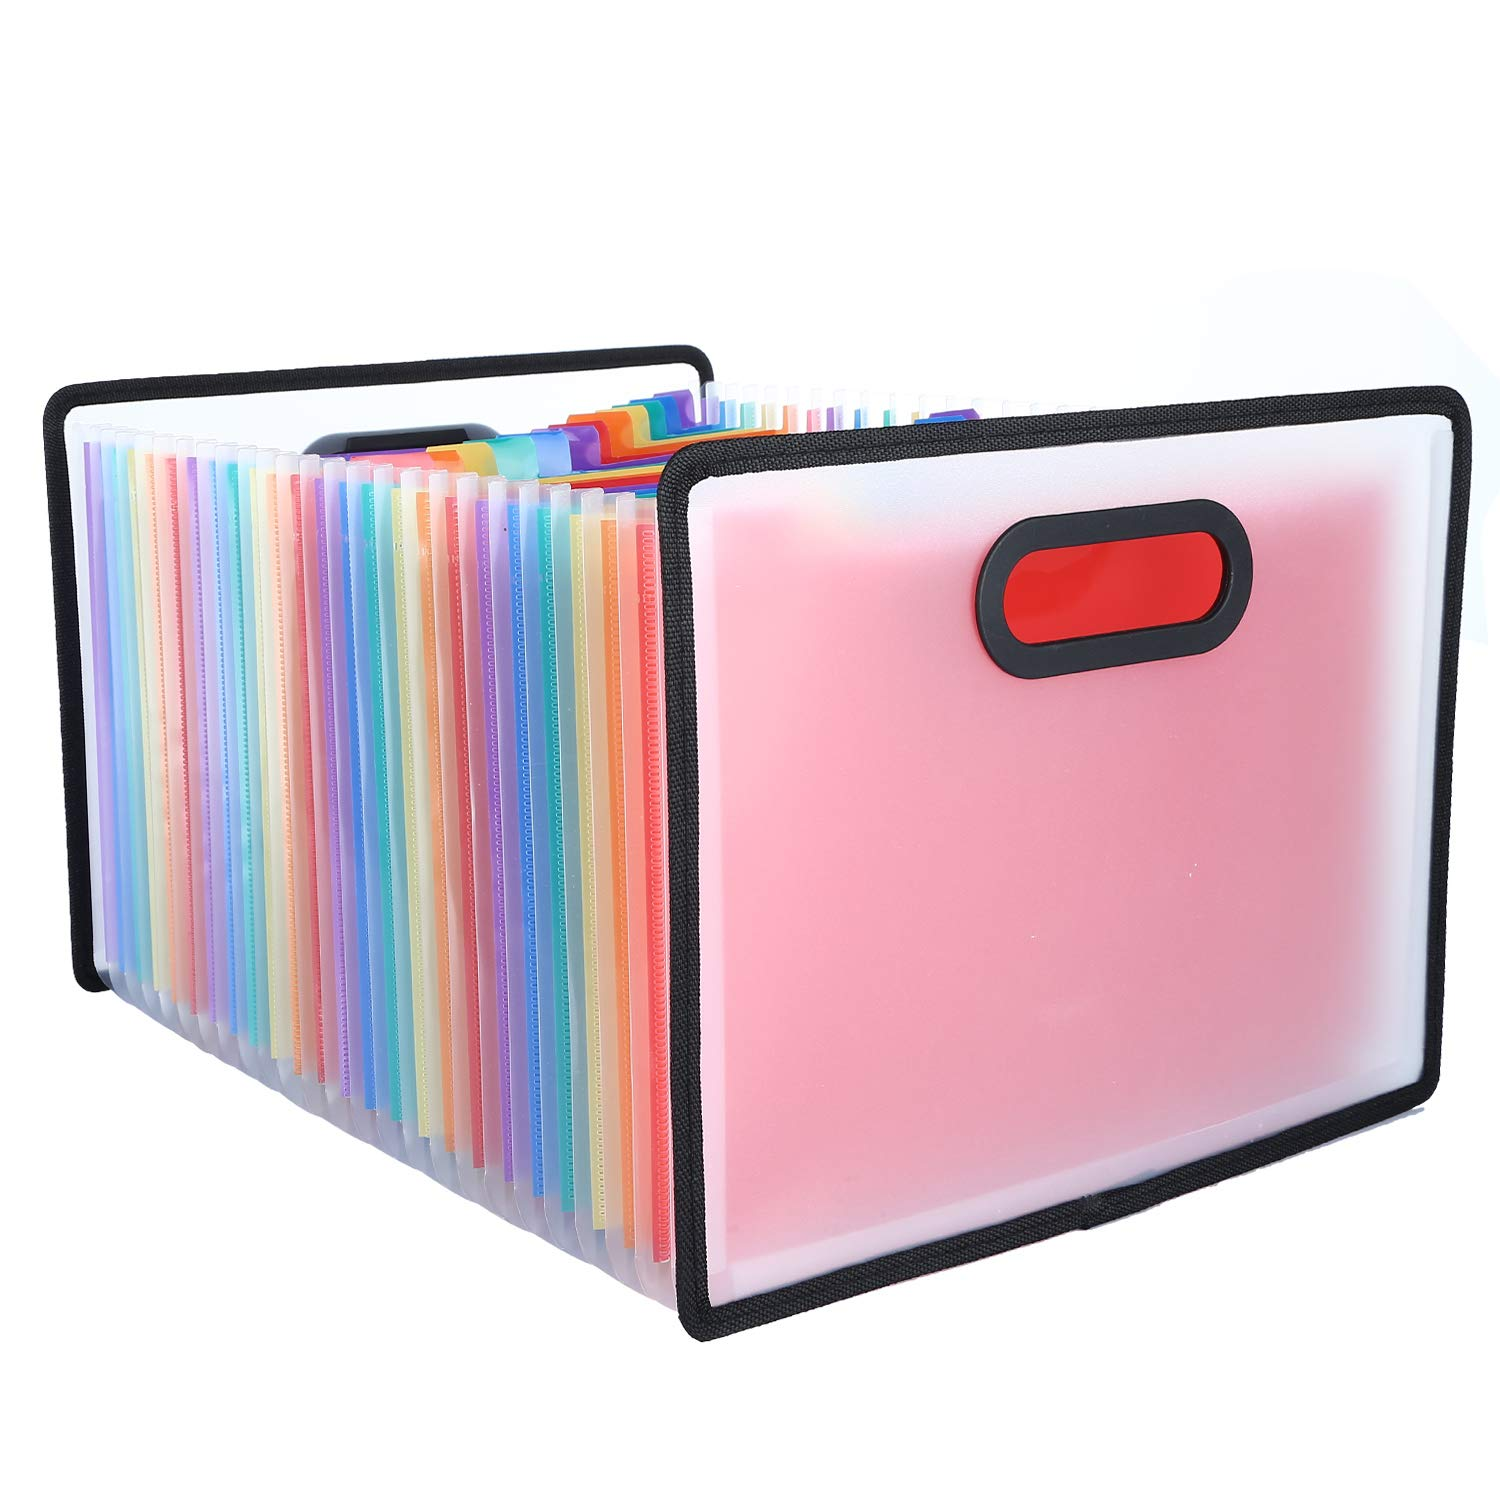 Expanding File Folder, Expandable File Organizer, Multicoloured Accordion File Folder with Labels Guide and Customized Label Sticker for Office/Home/Business/Study/Paper Work (24 Pockets)